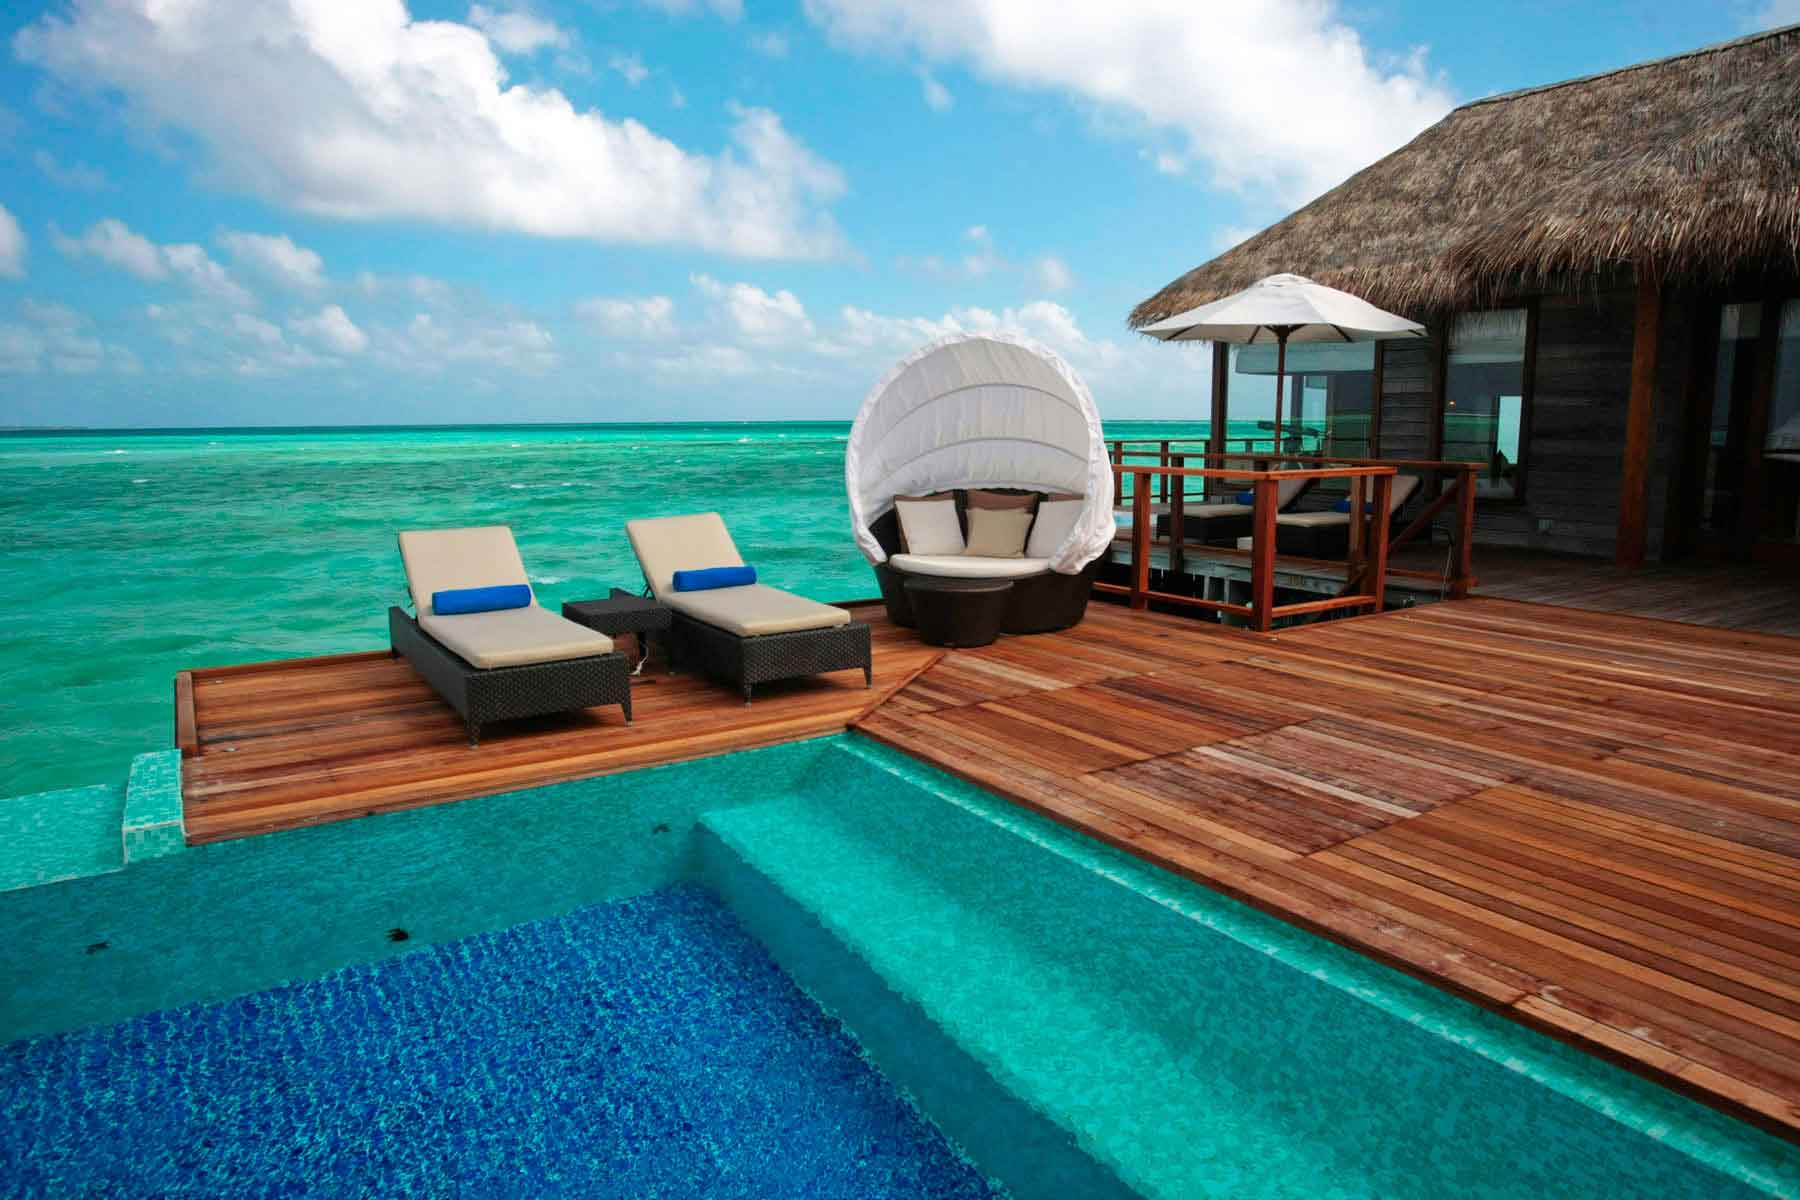 Hotel-Conrad-Rangali,-Maldives-outside-sunbeds